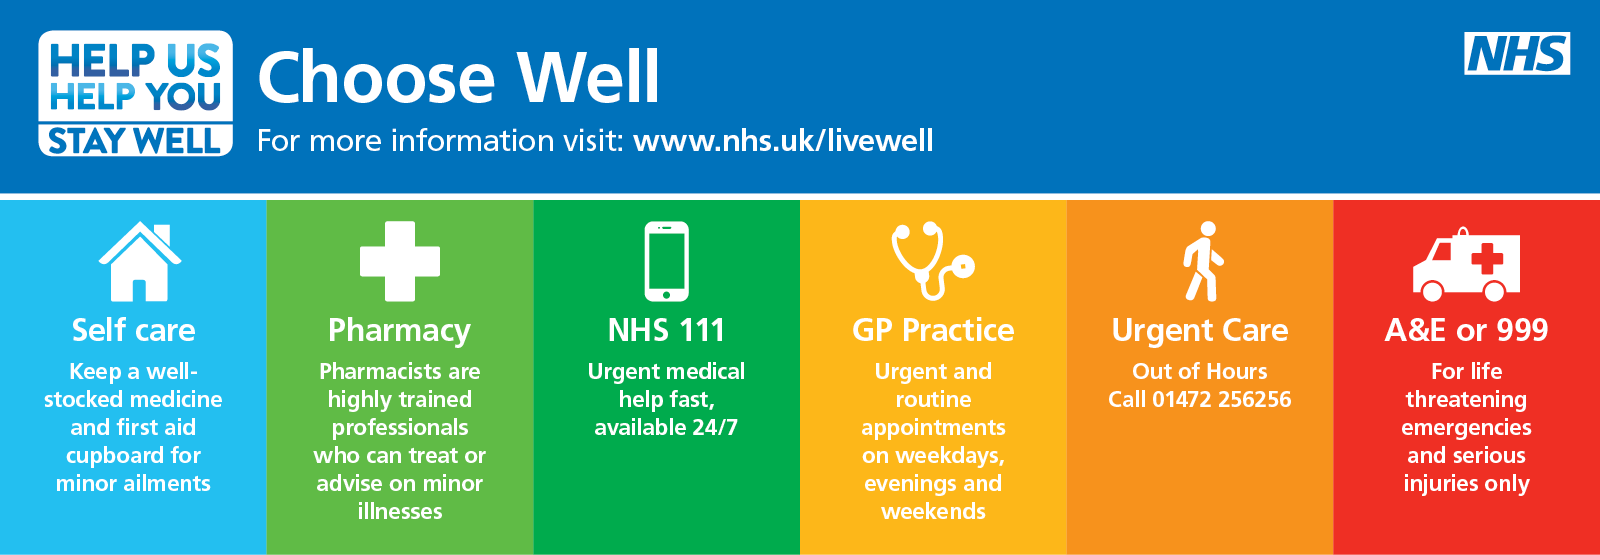 NHS Choose well winter graphic